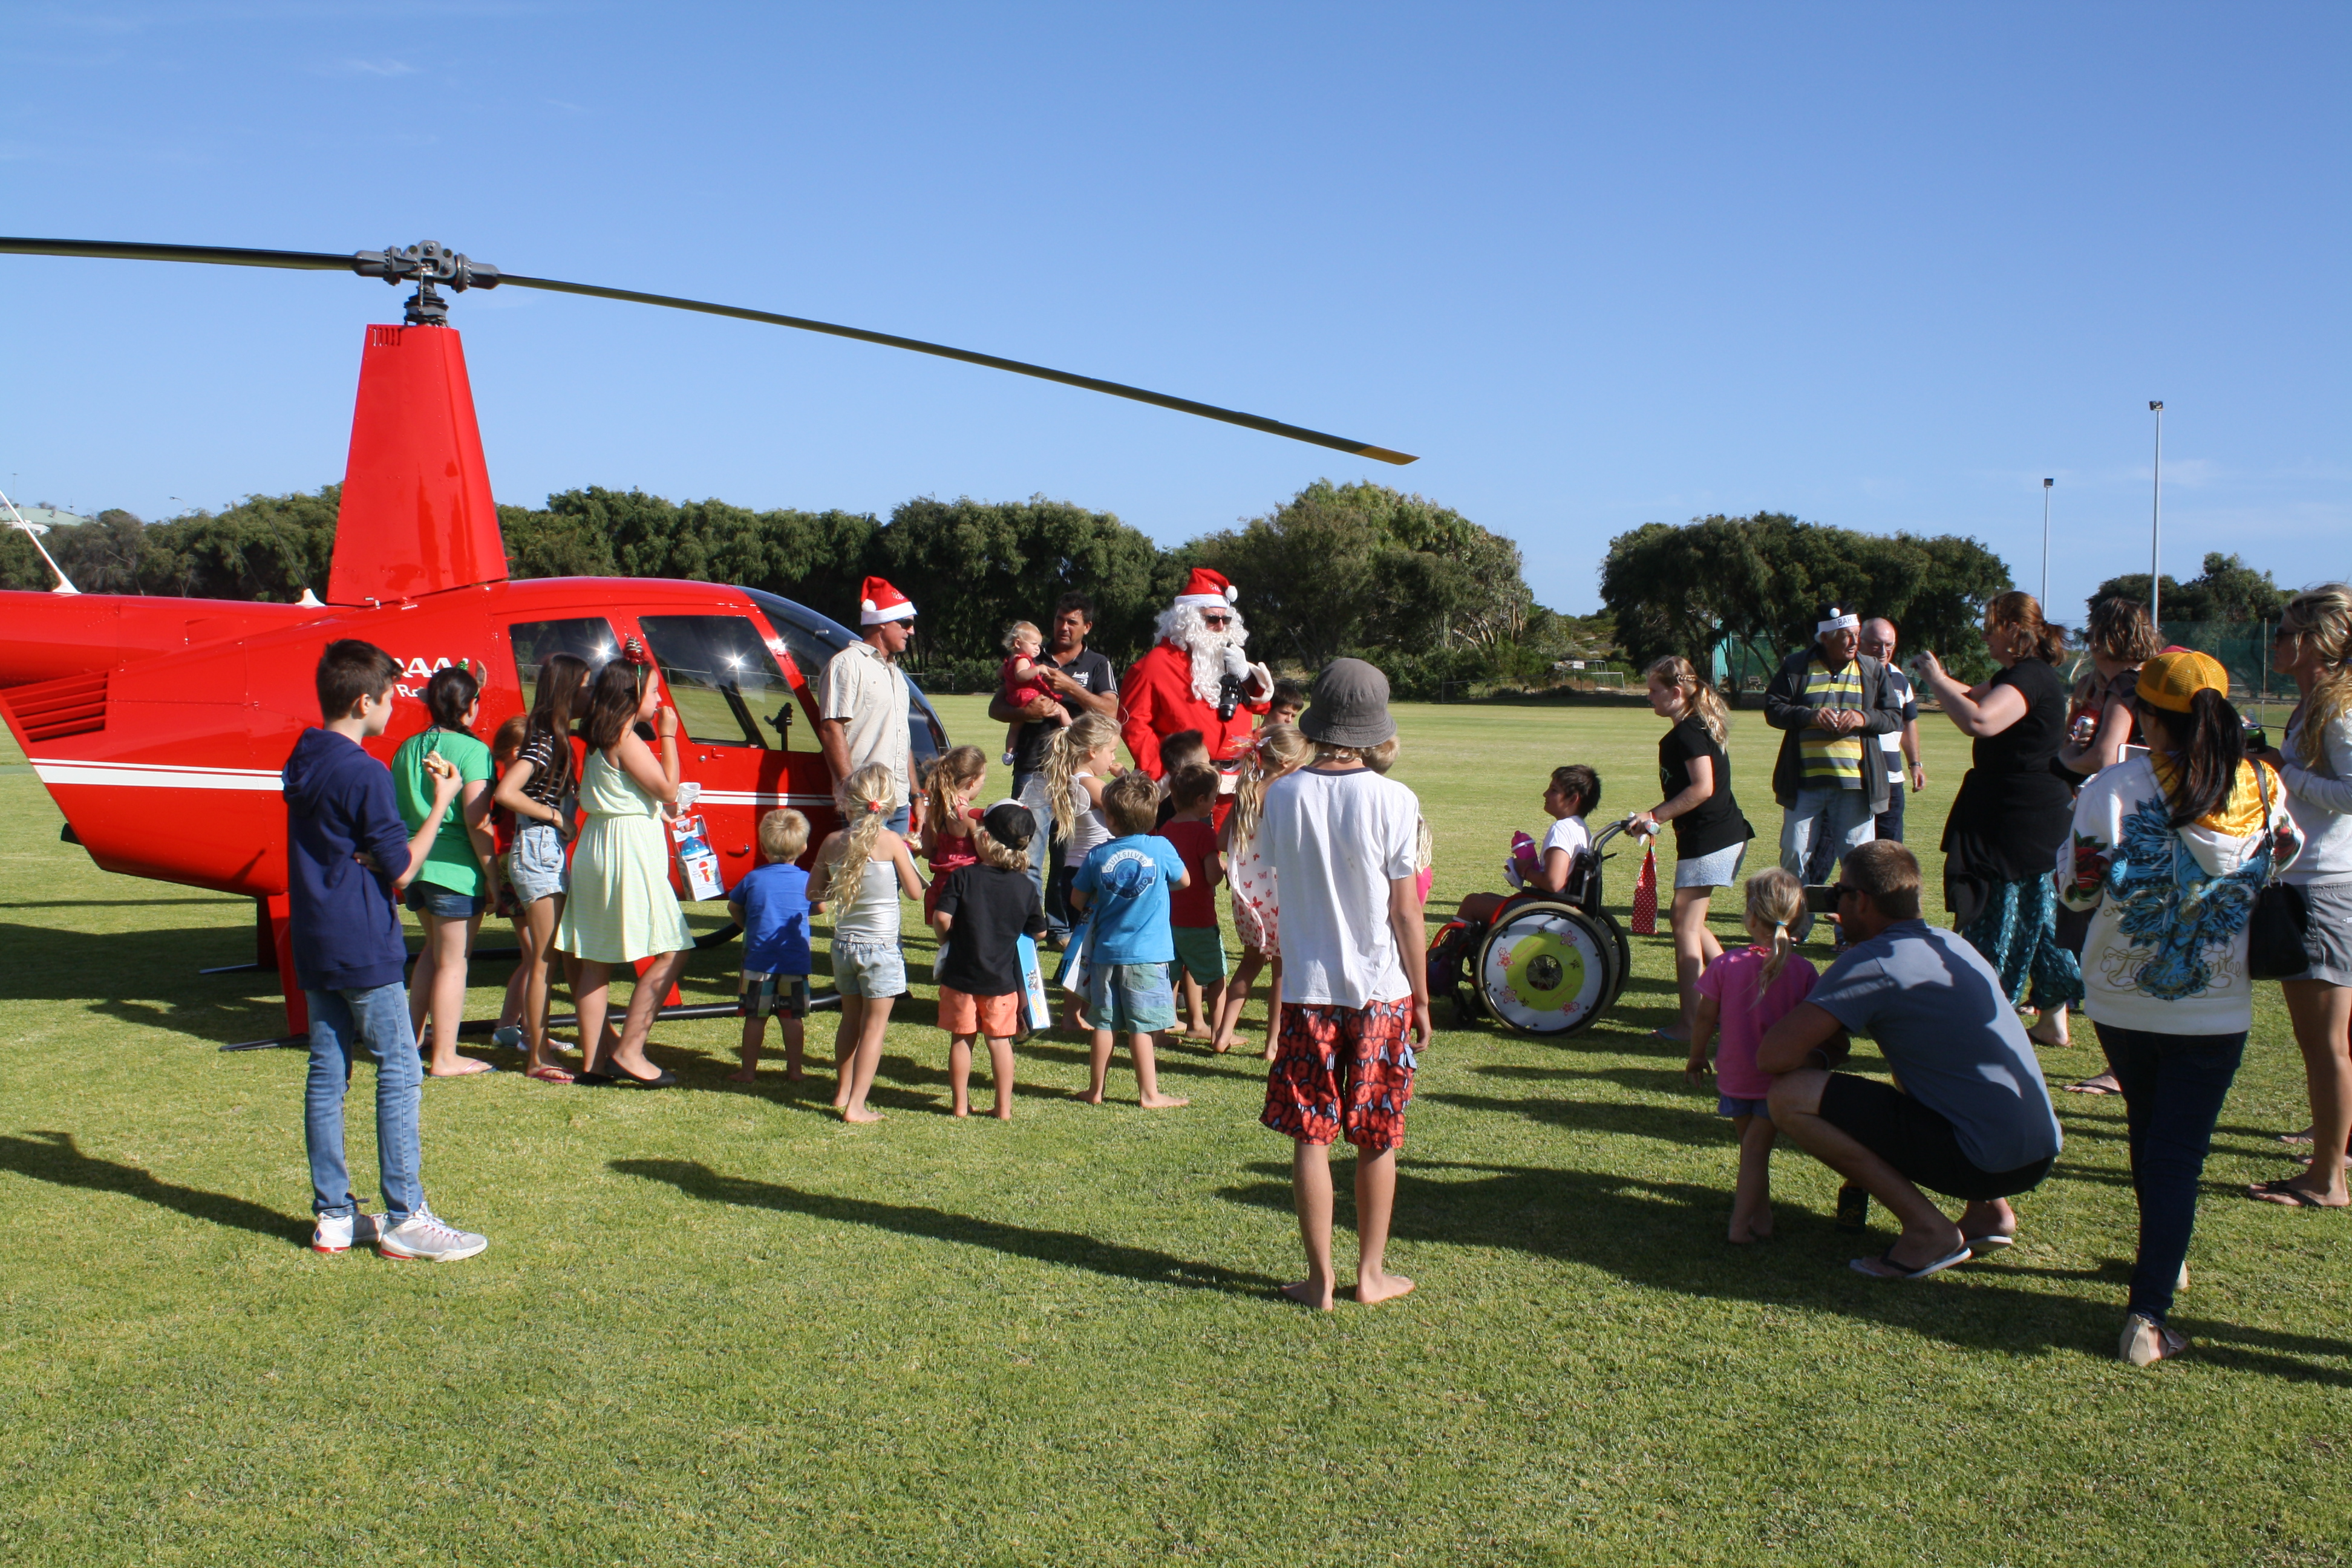 Santa arrives at Seabird 2015